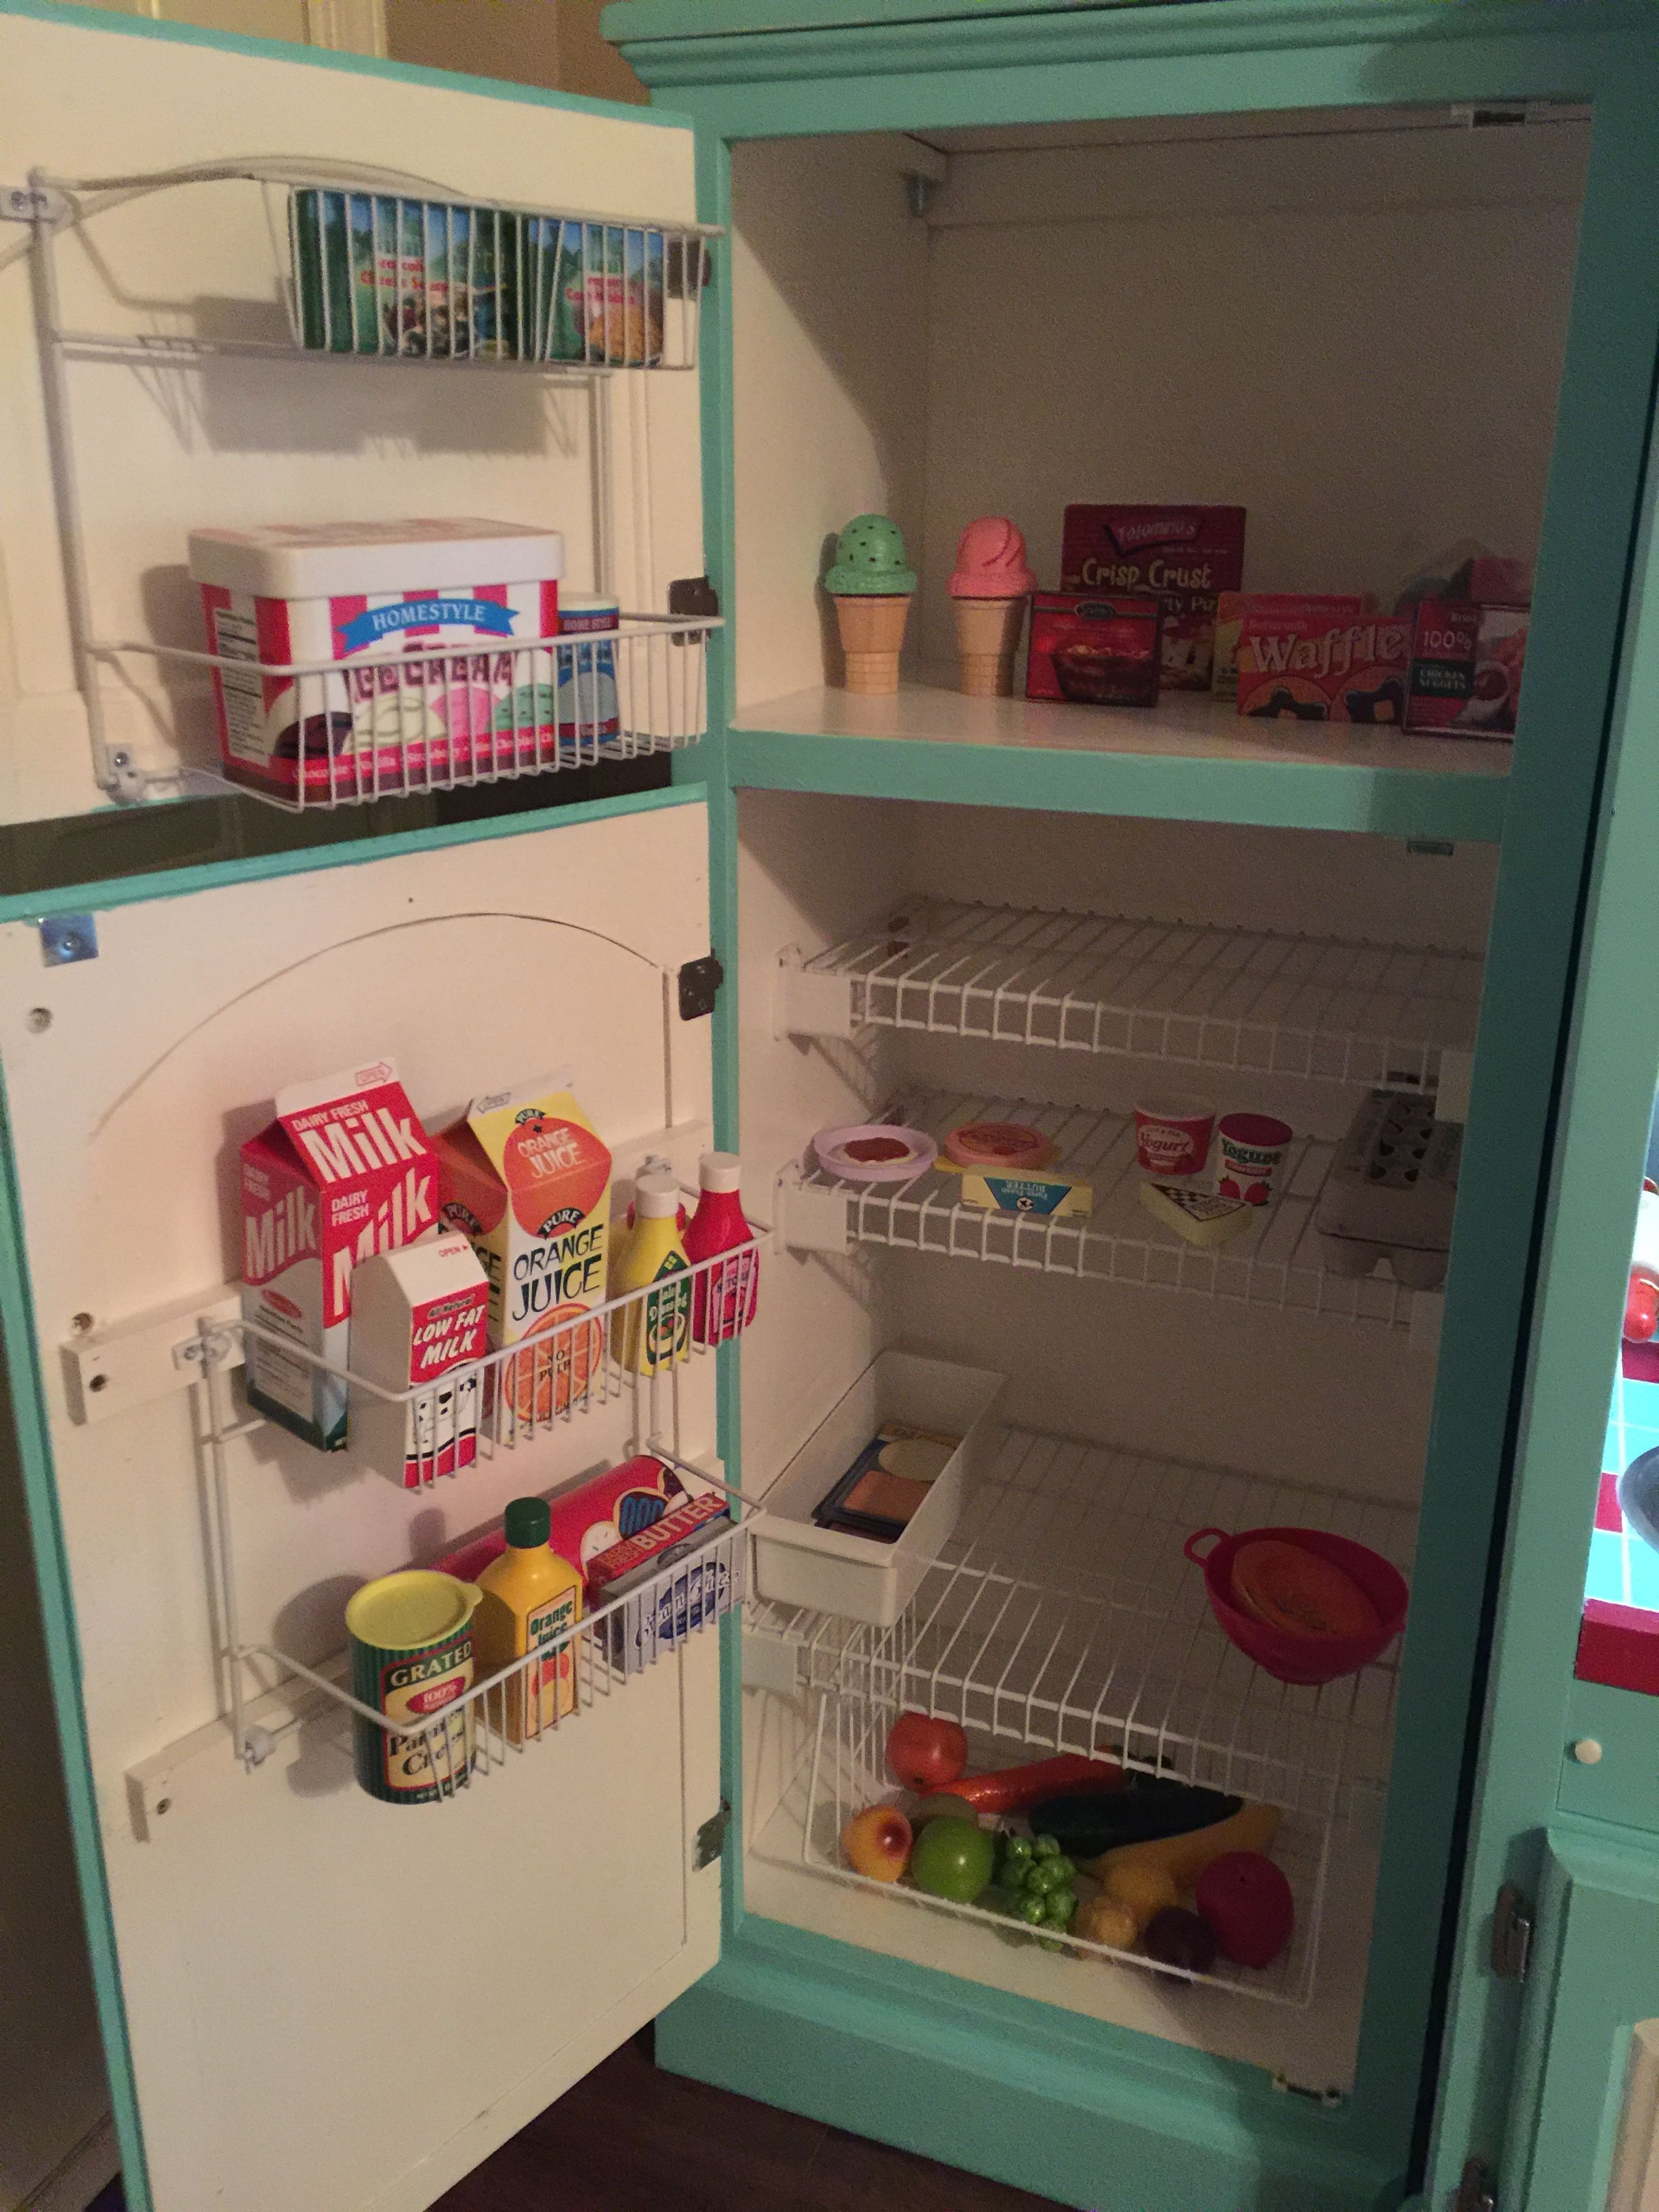 Inside refrigerator and freezer. in 2020 Diy play